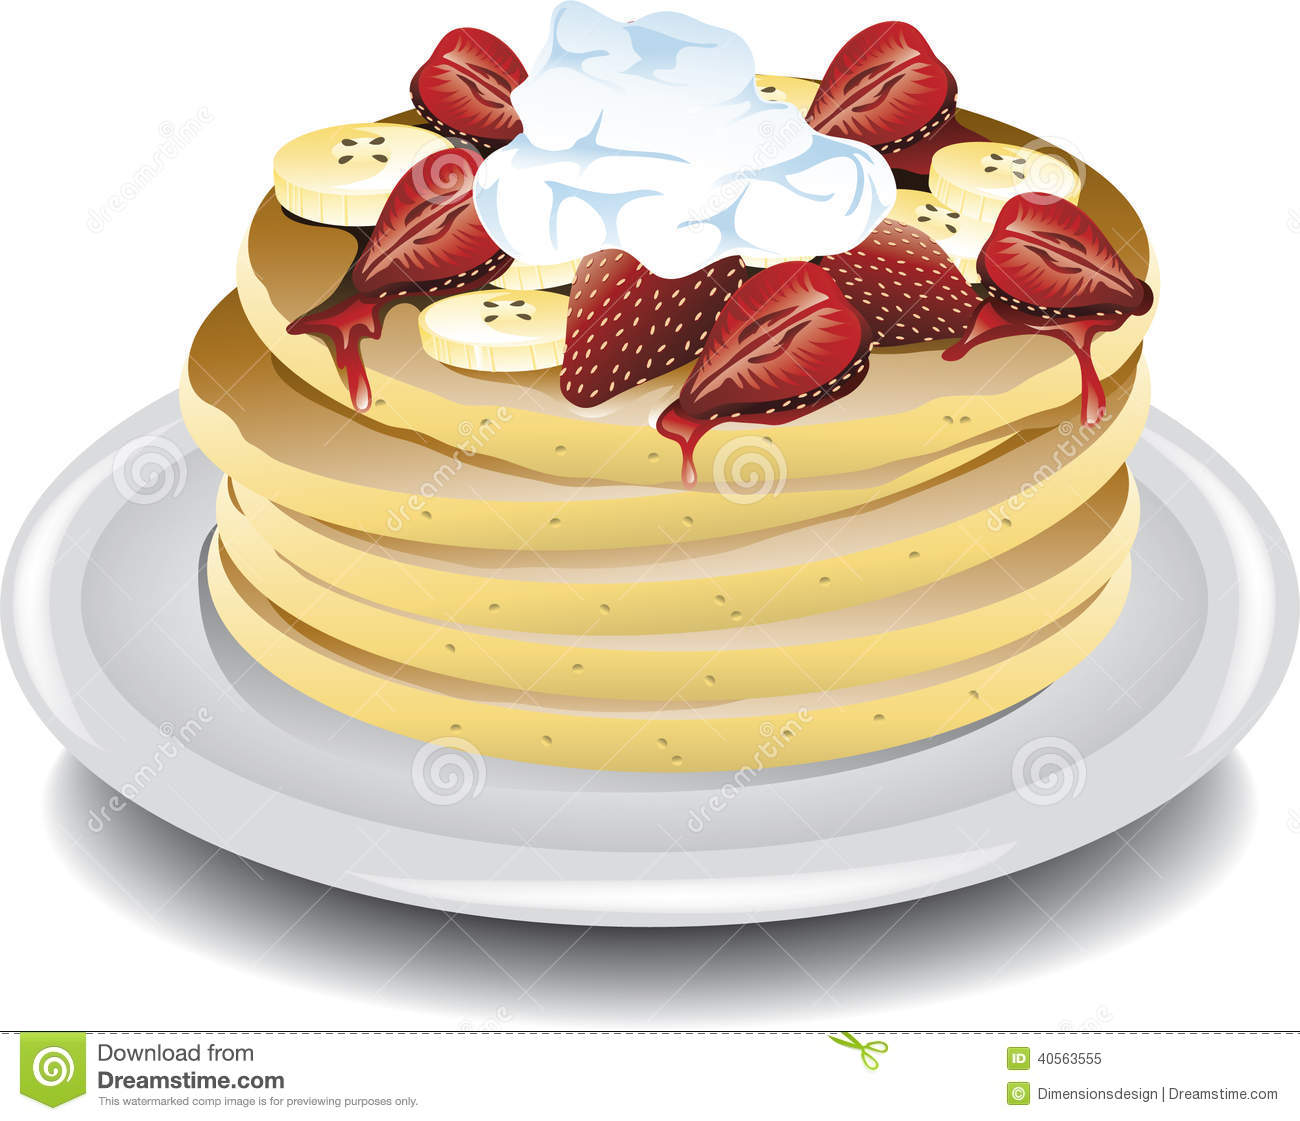 8 Photos of Pancakes With Bananas Strawberries And Whip Cream